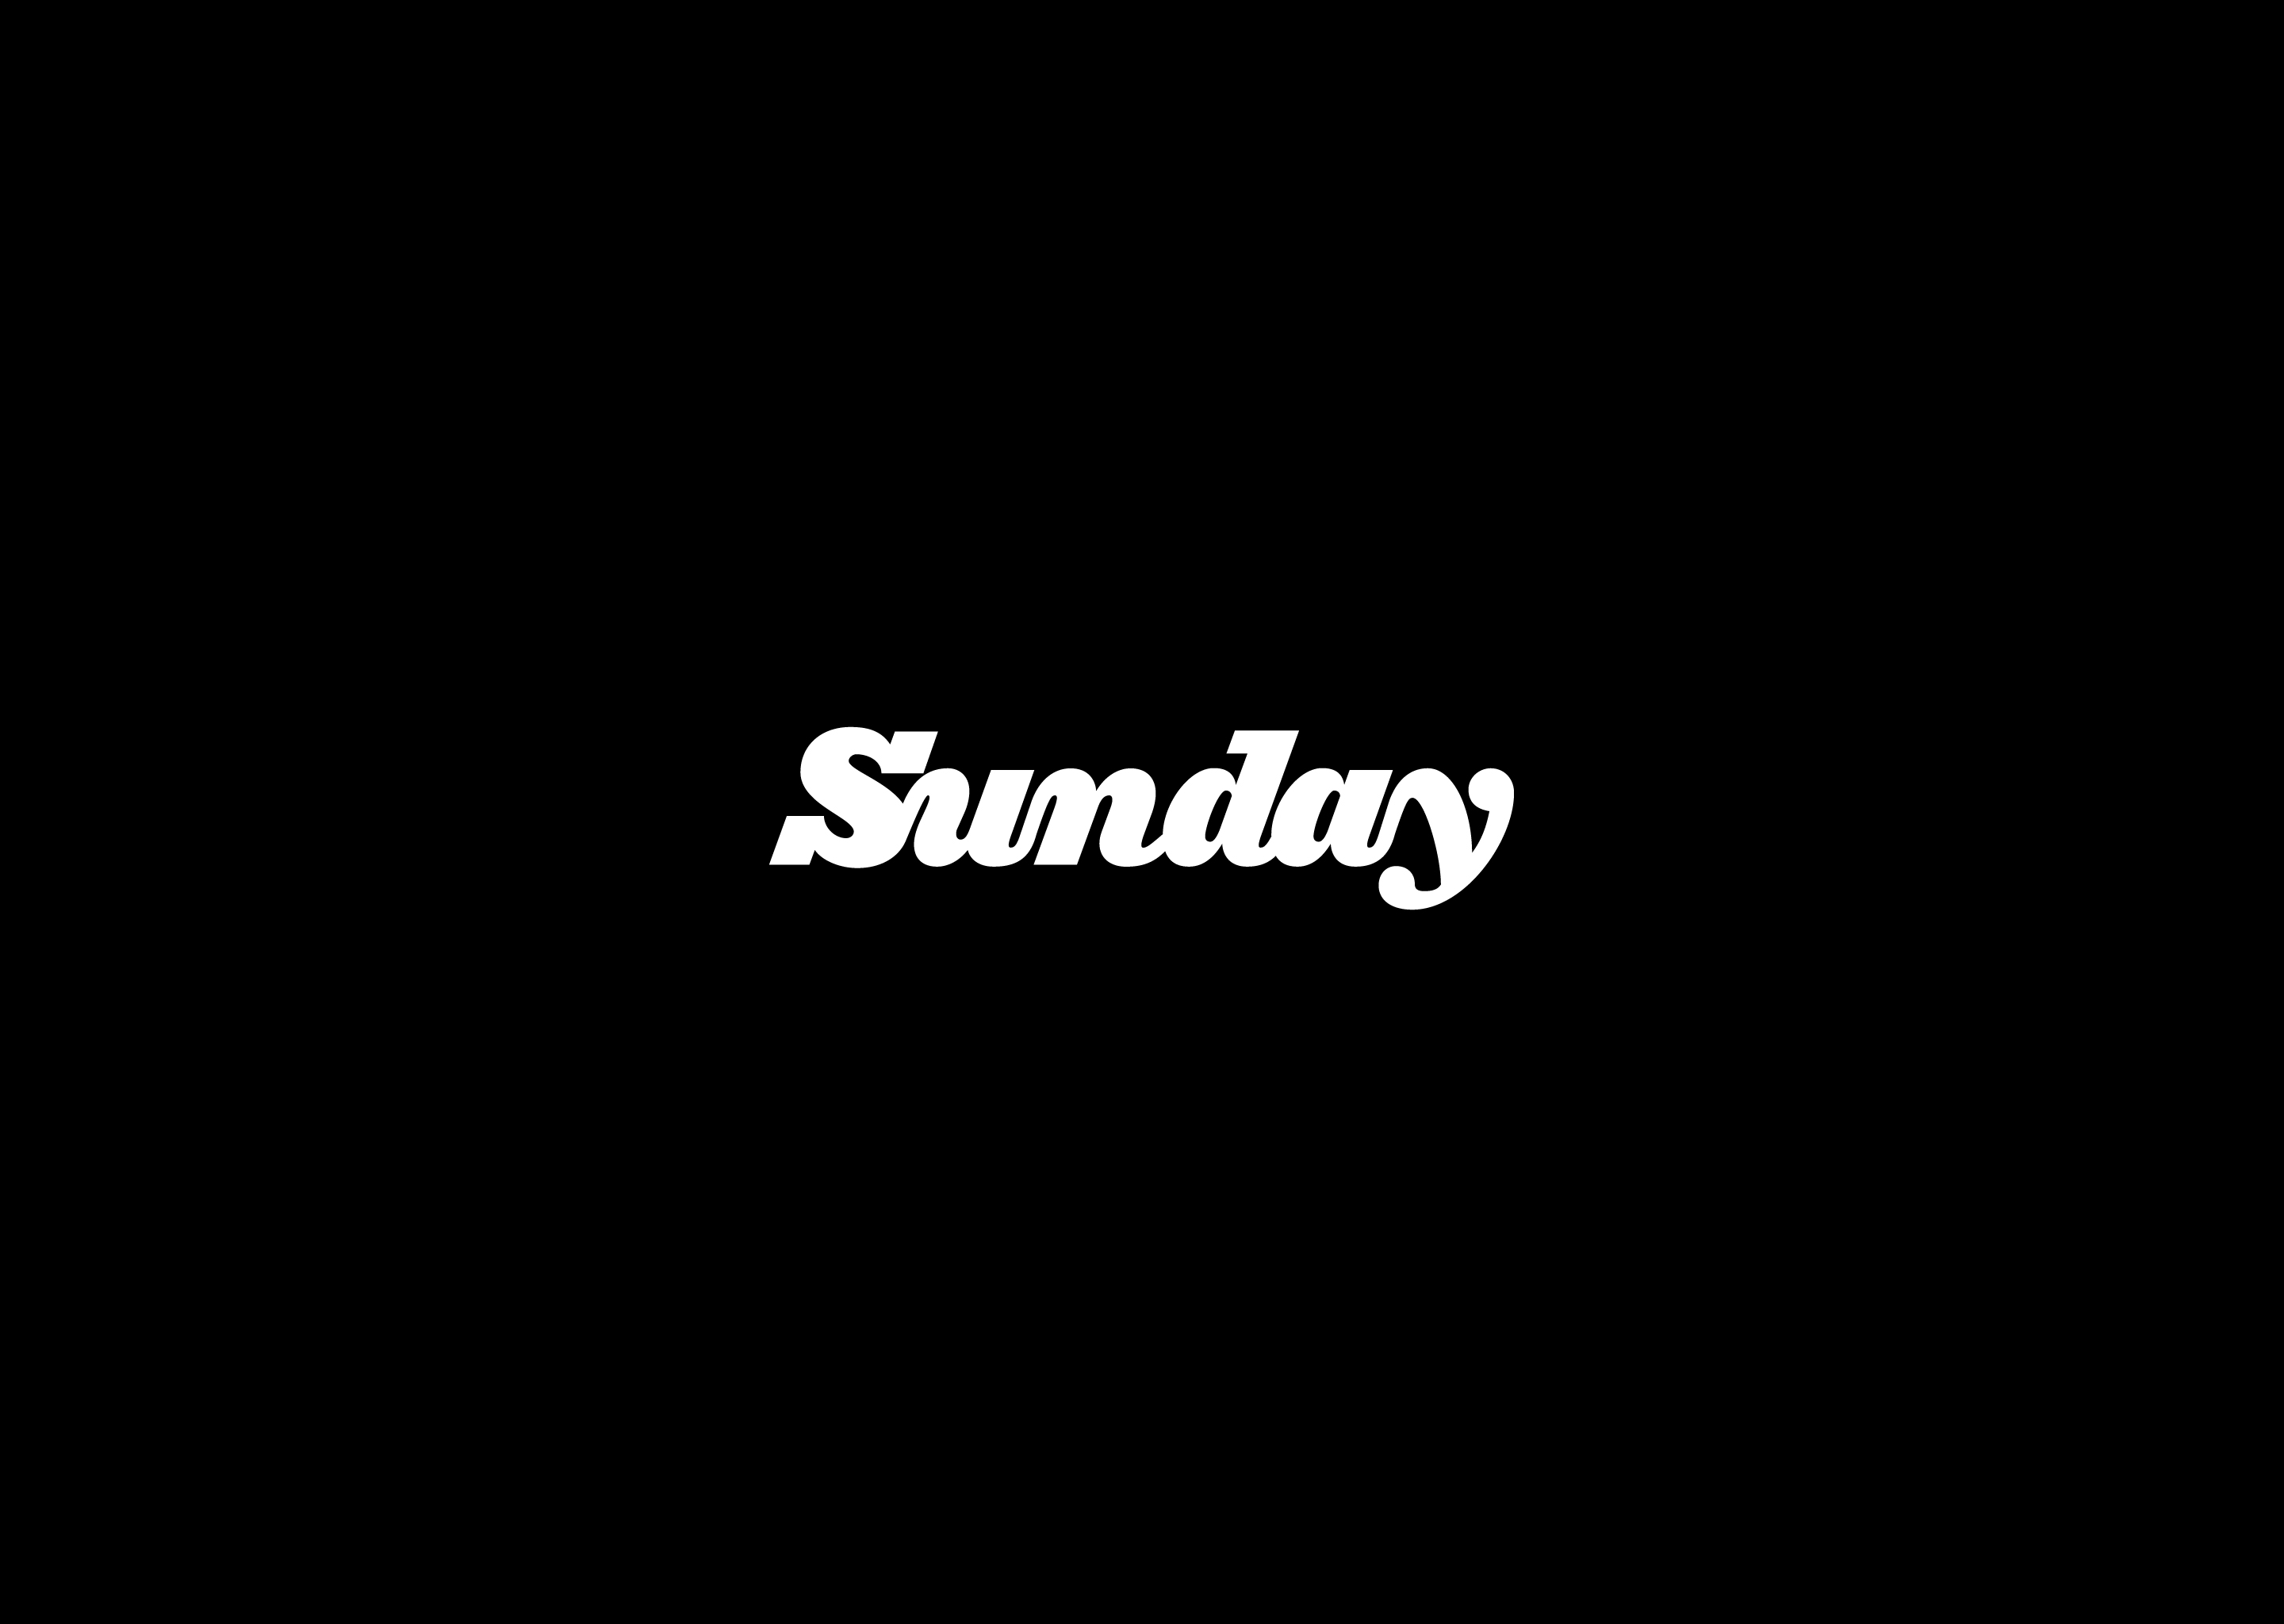 sunday typography wallpaper 64230